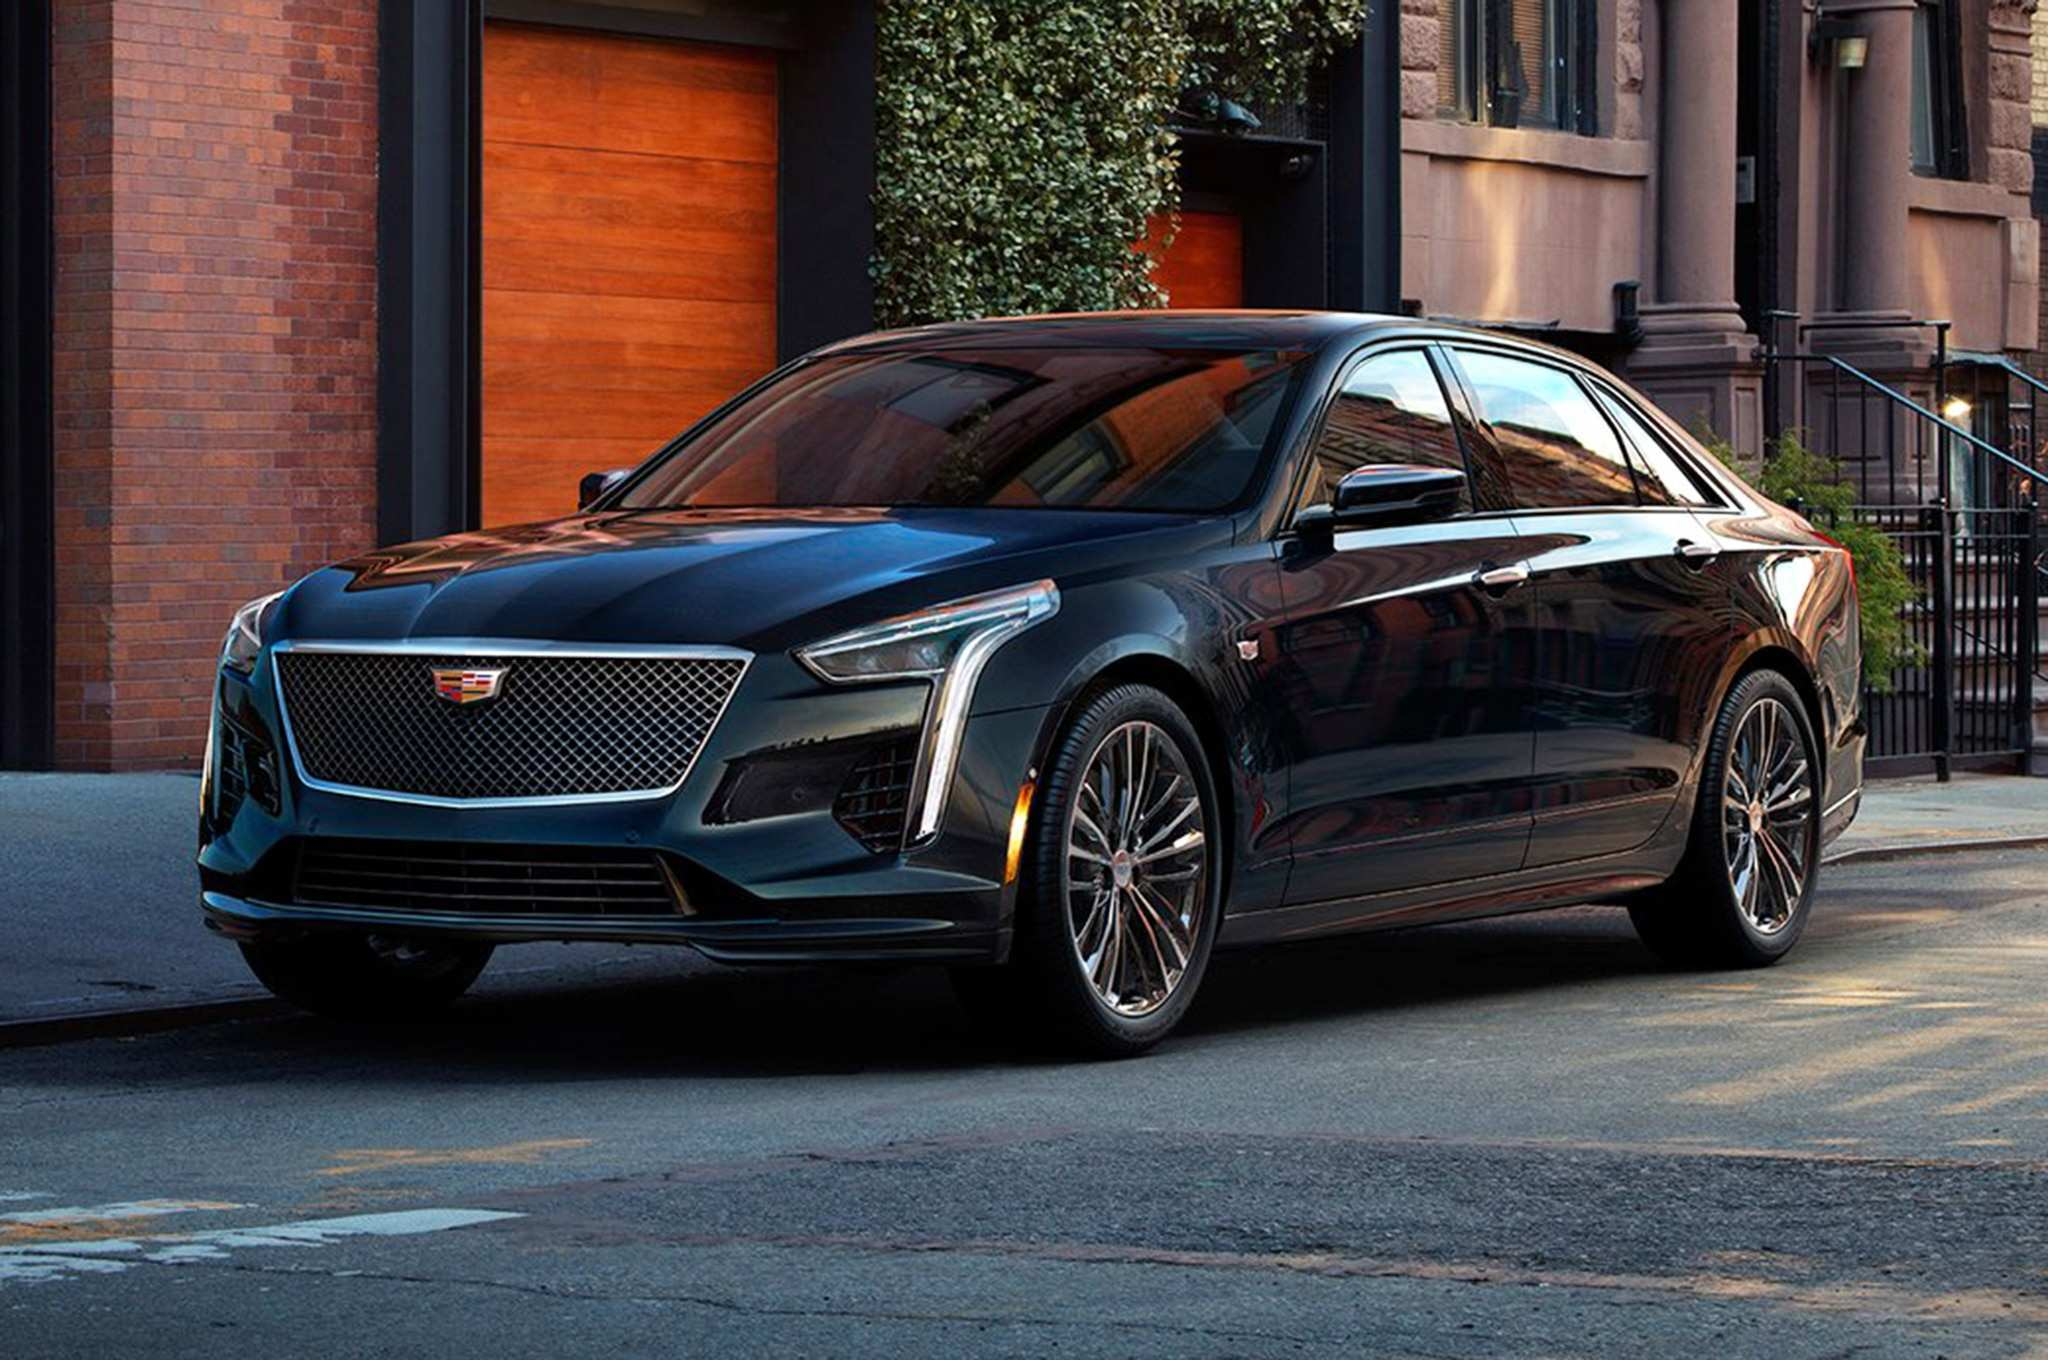 95 Gallery of New Cadillac For 2019 New Concept Exterior and Interior for New Cadillac For 2019 New Concept